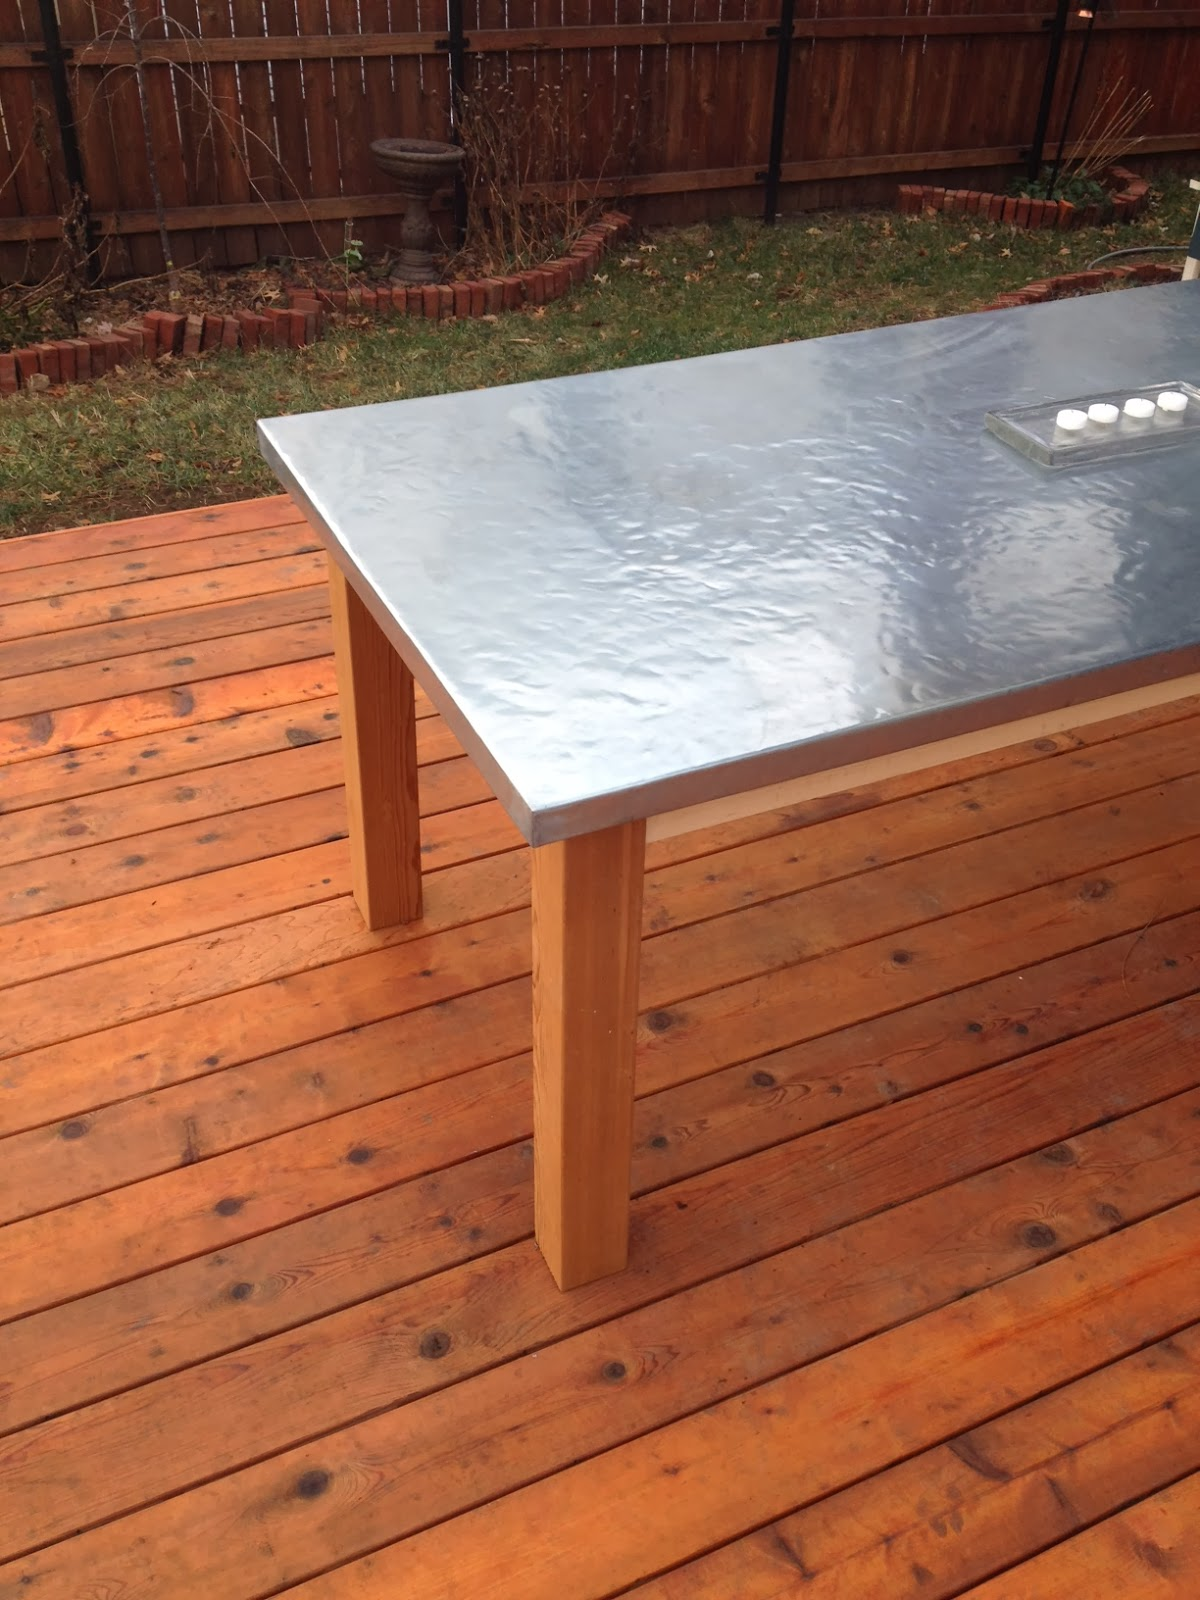 Before And After Kansas City How To Make A Diy Outdoor Zinc Table